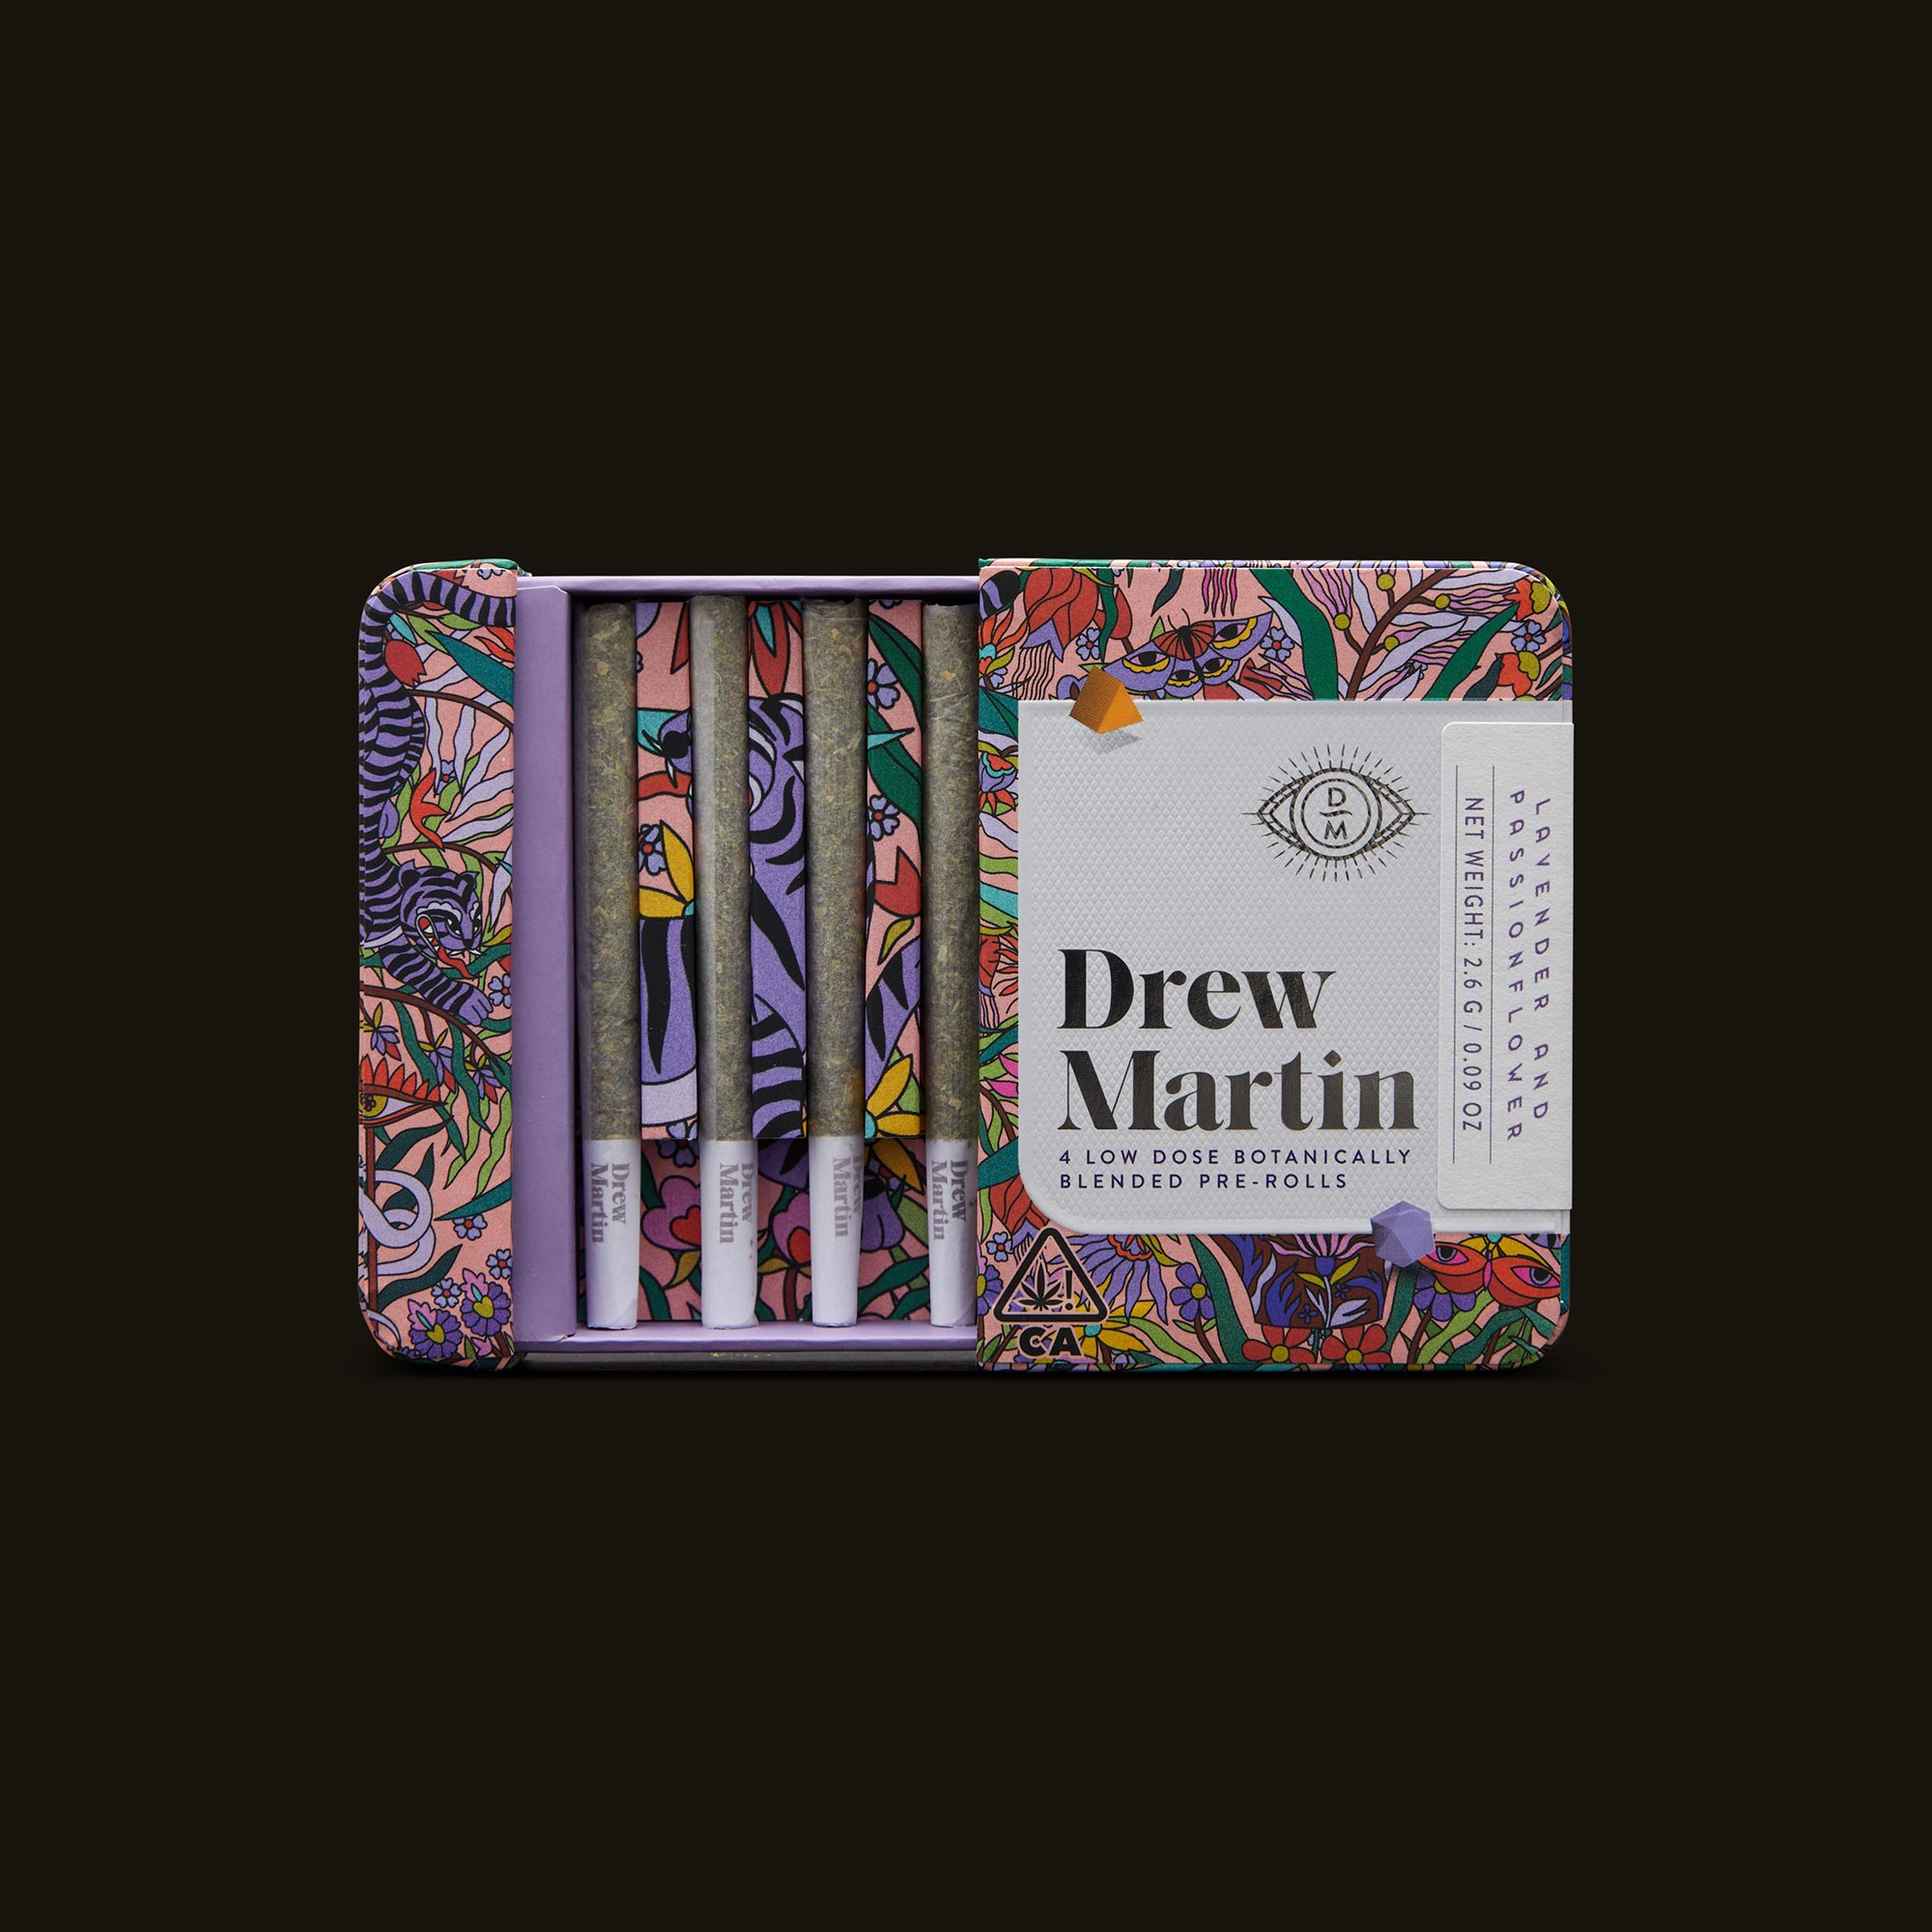 Drew Martin Lavender and Passionflower Pre-Rolls Open Packaging